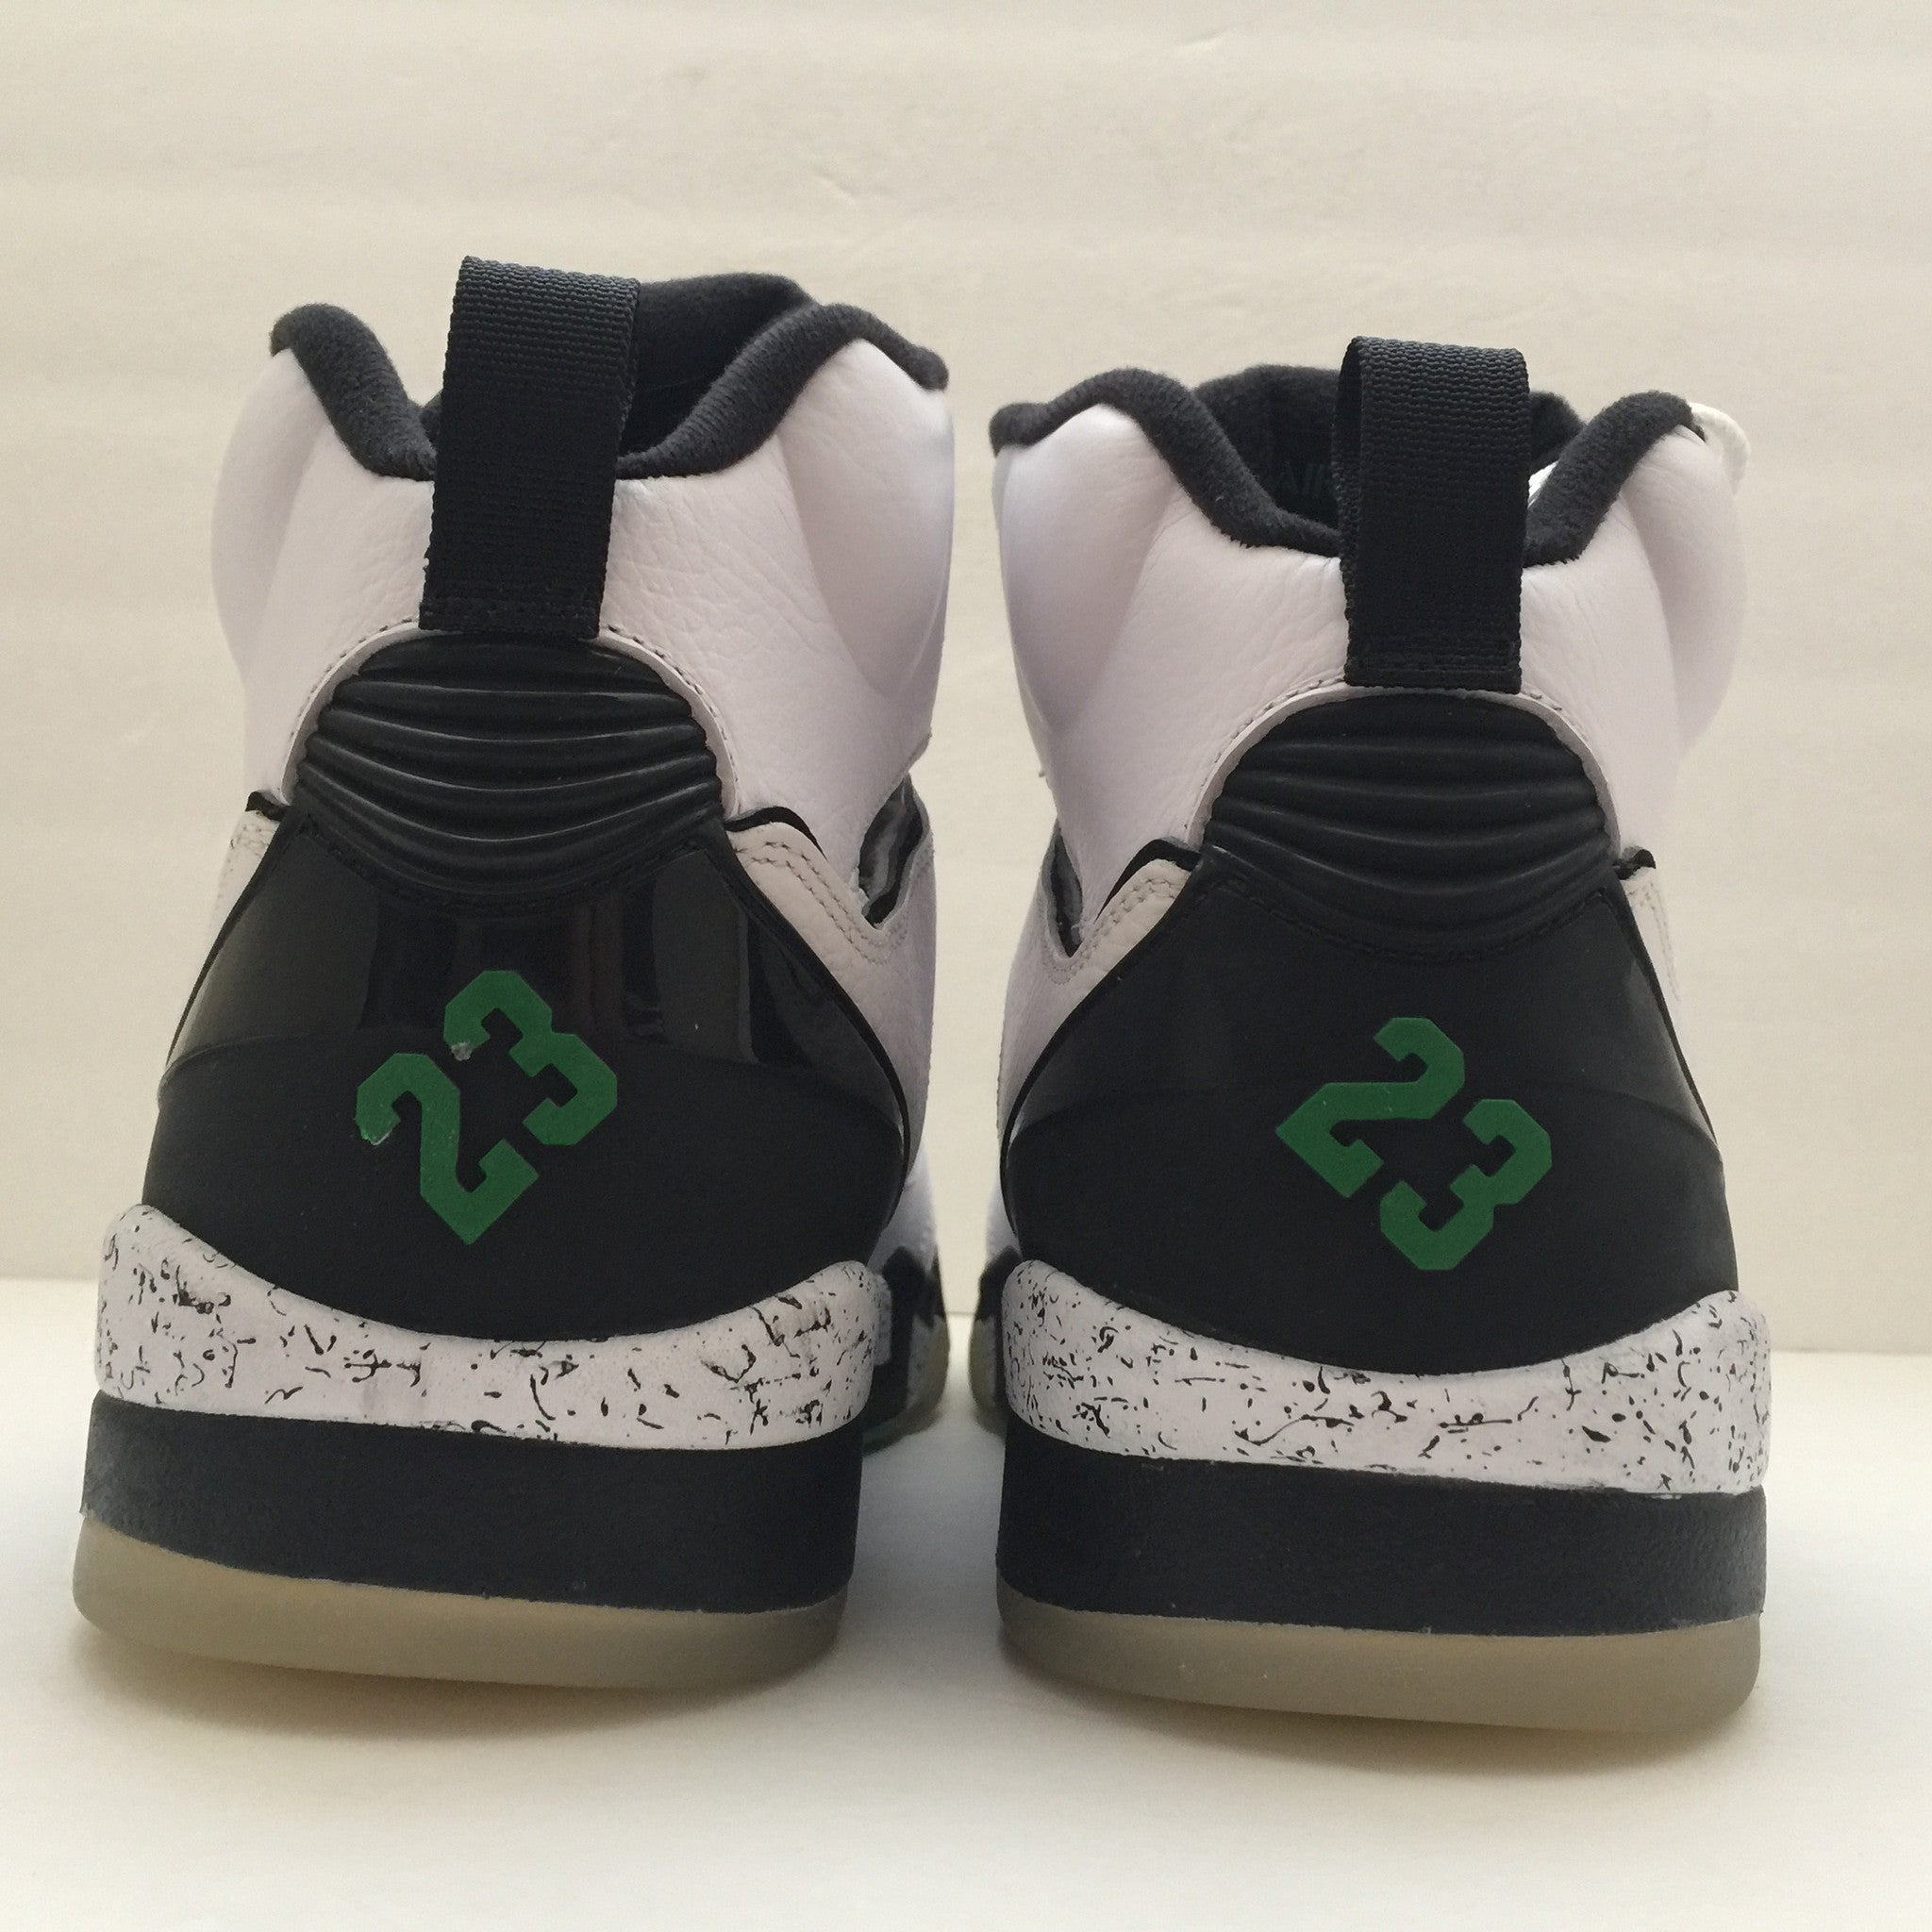 DS Nike Air Jordan Sixty Plus Size 13 - DOPEFOOT  - 5